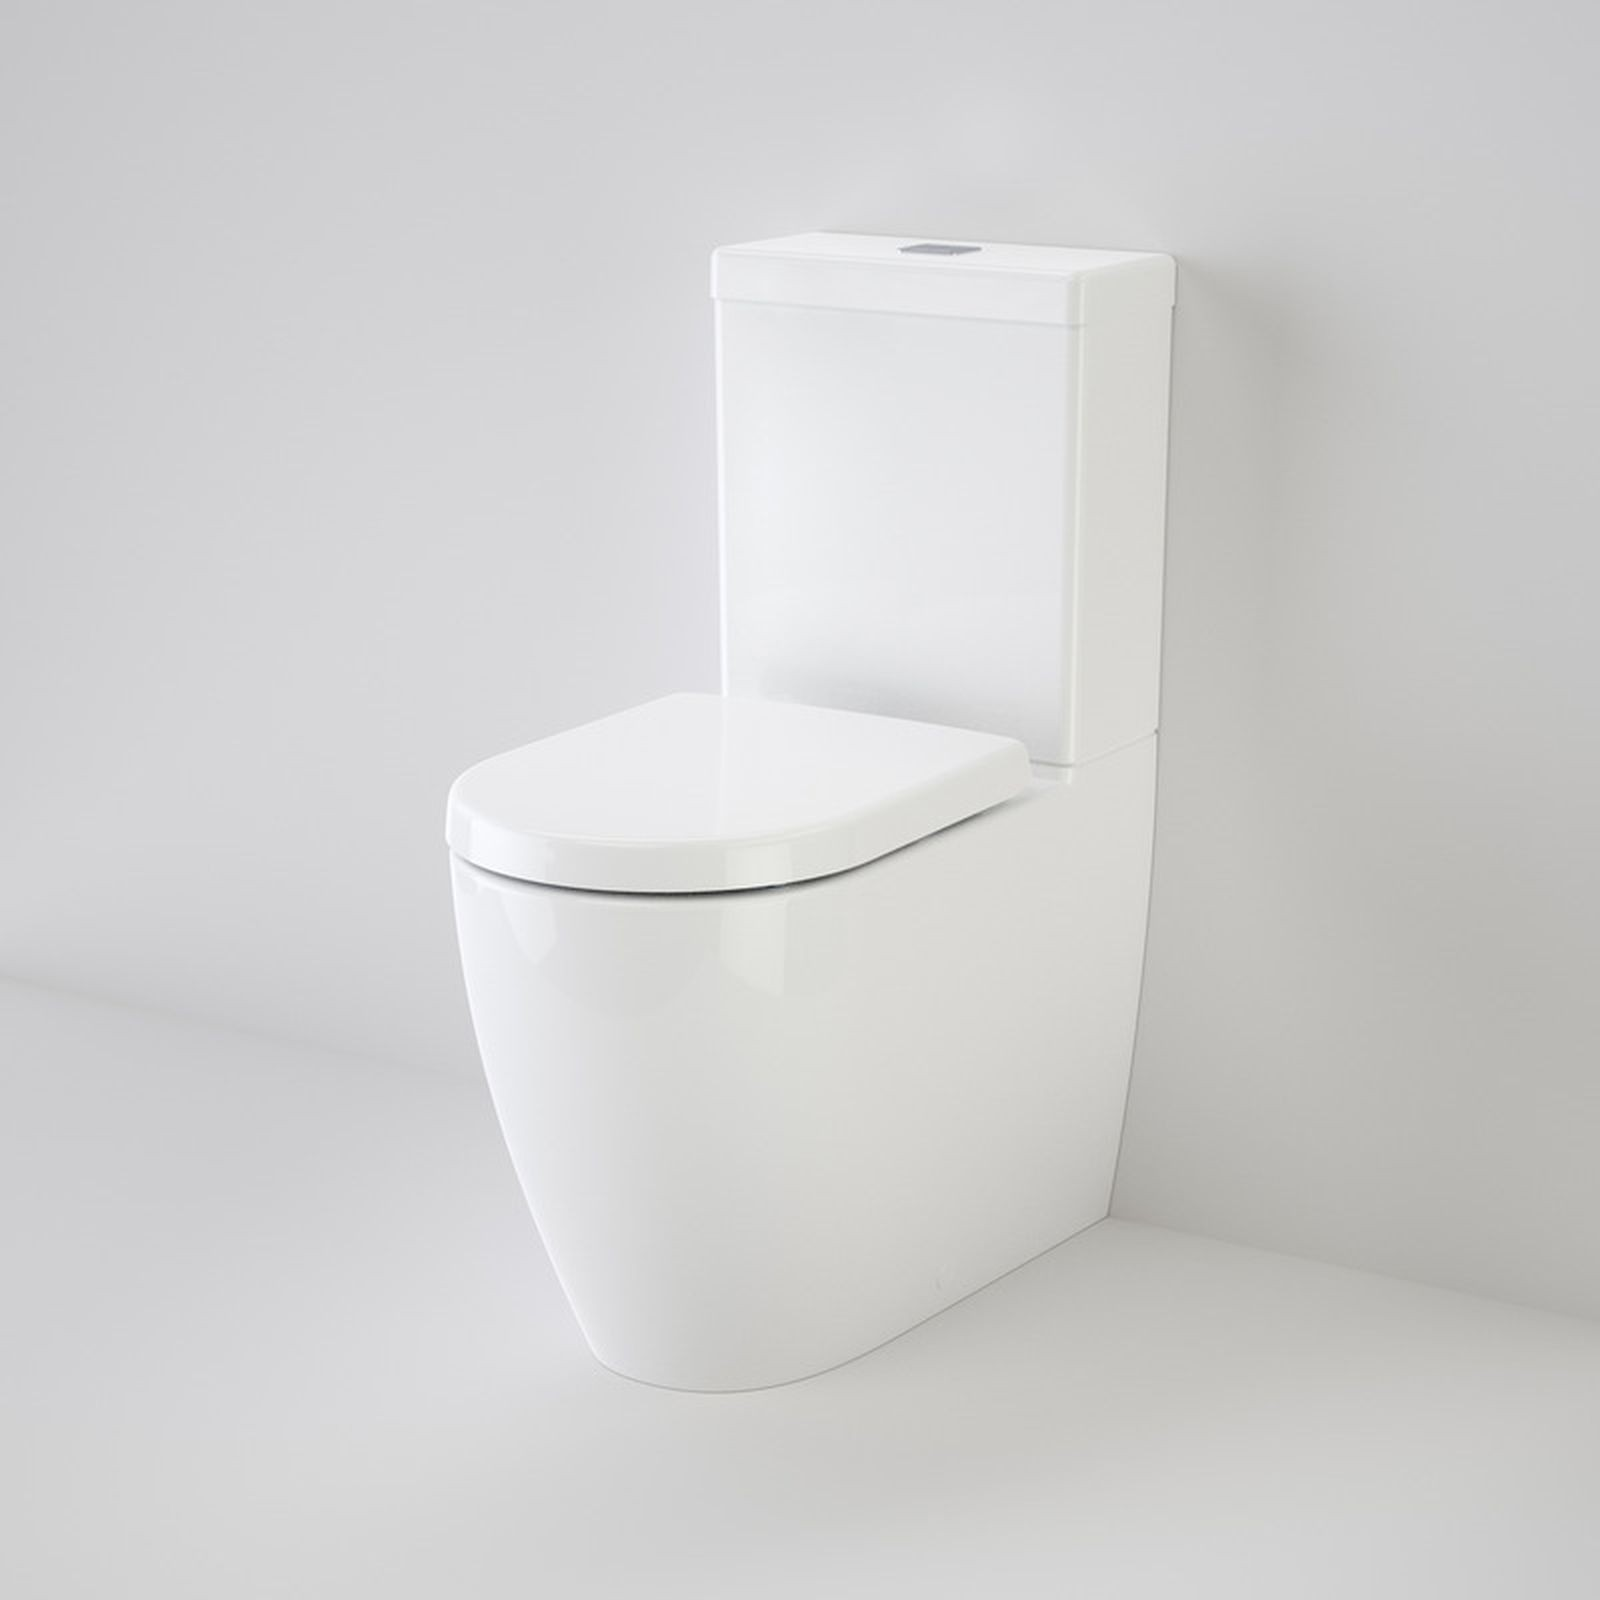 Caroma Urbane Wall Faced Close Coupled Toilet Suite